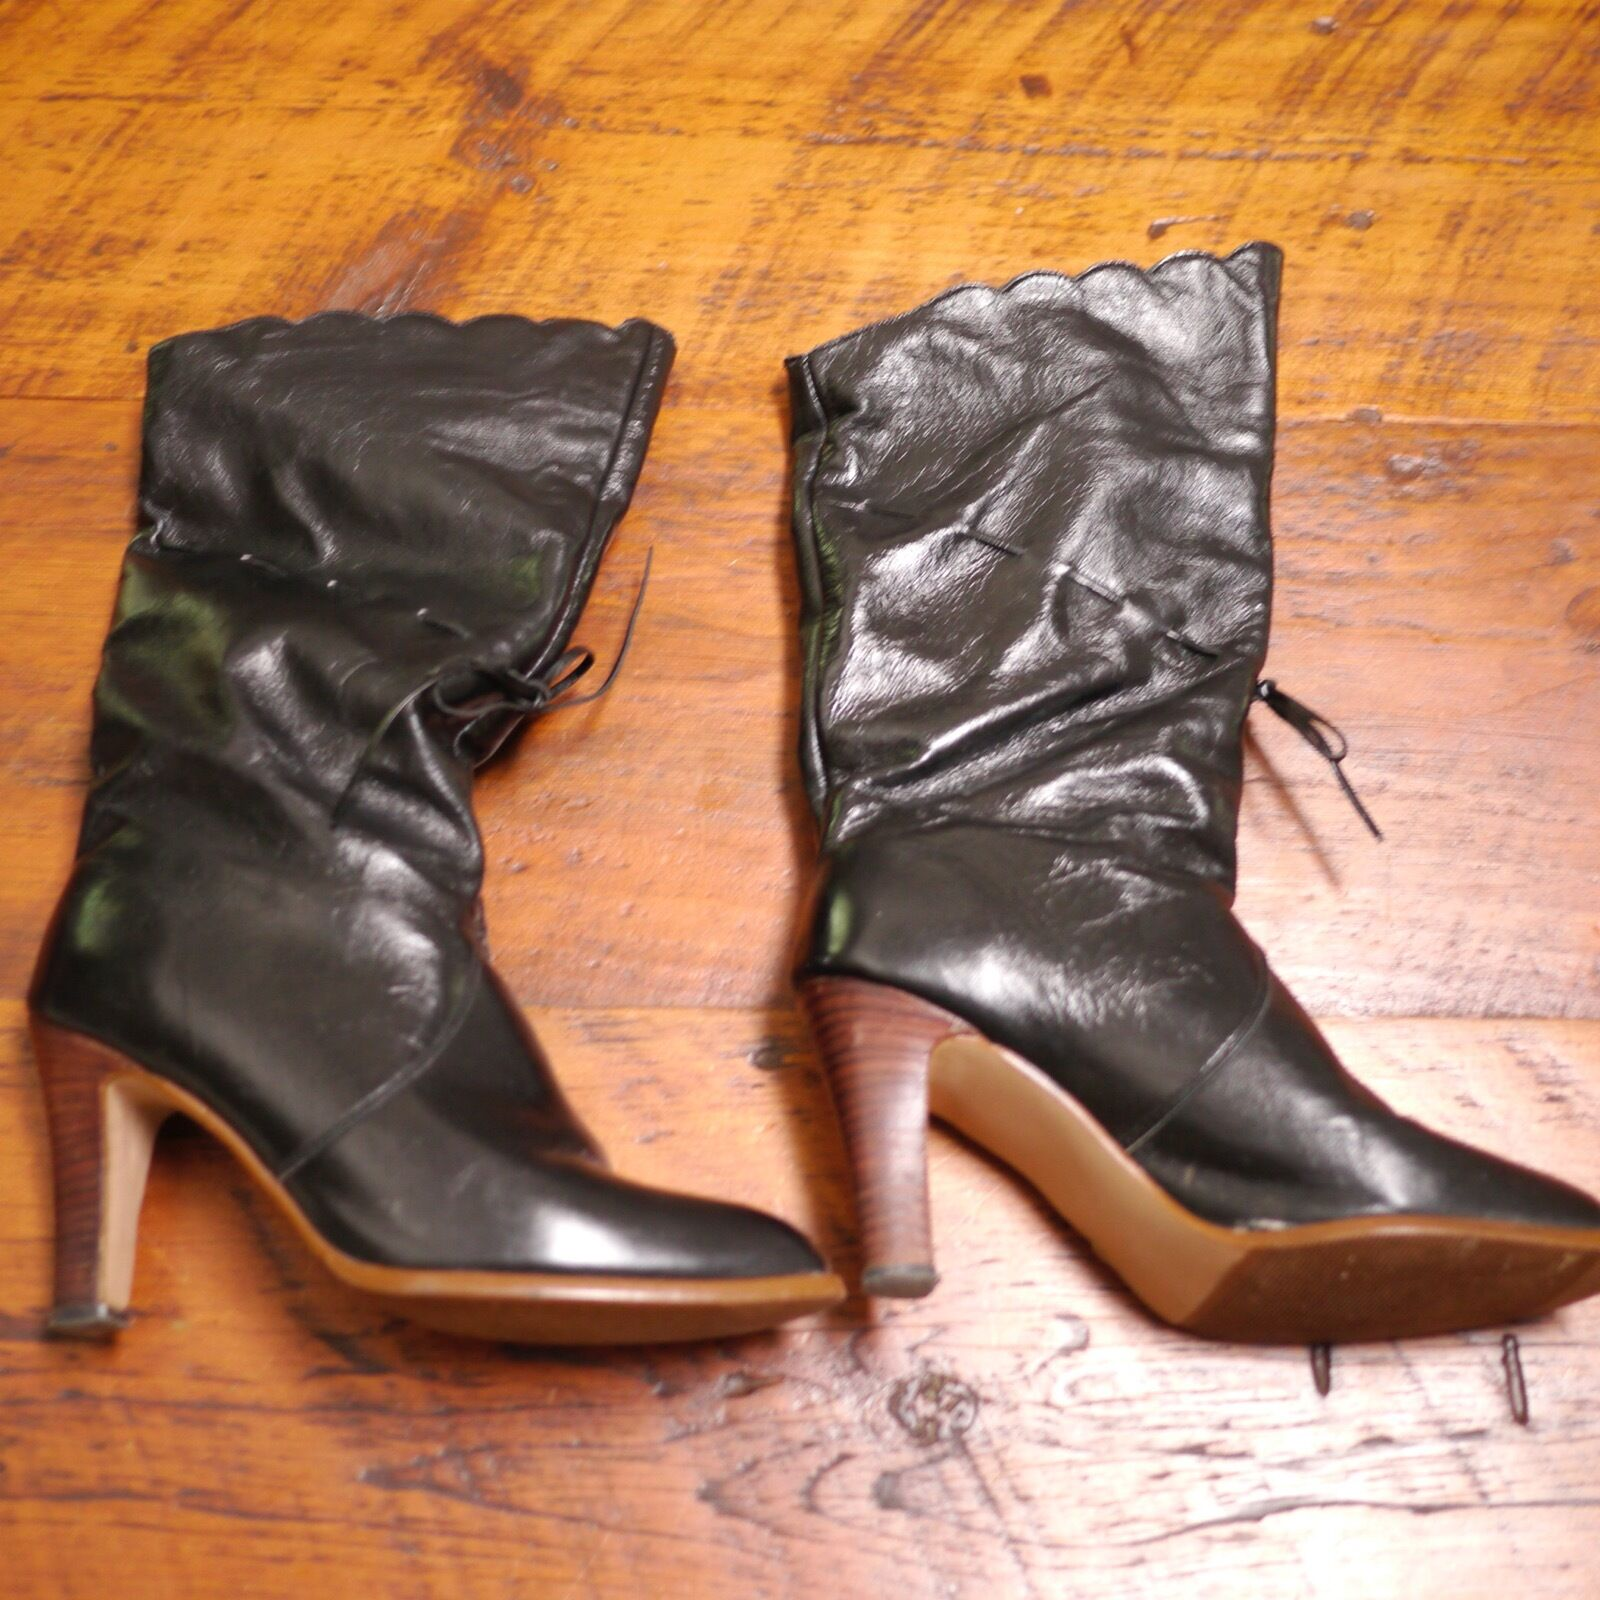 Vintage 80s NATURALIZER Shiny Black Leather High Heel Calf Boots 7.5M 38 w  Box